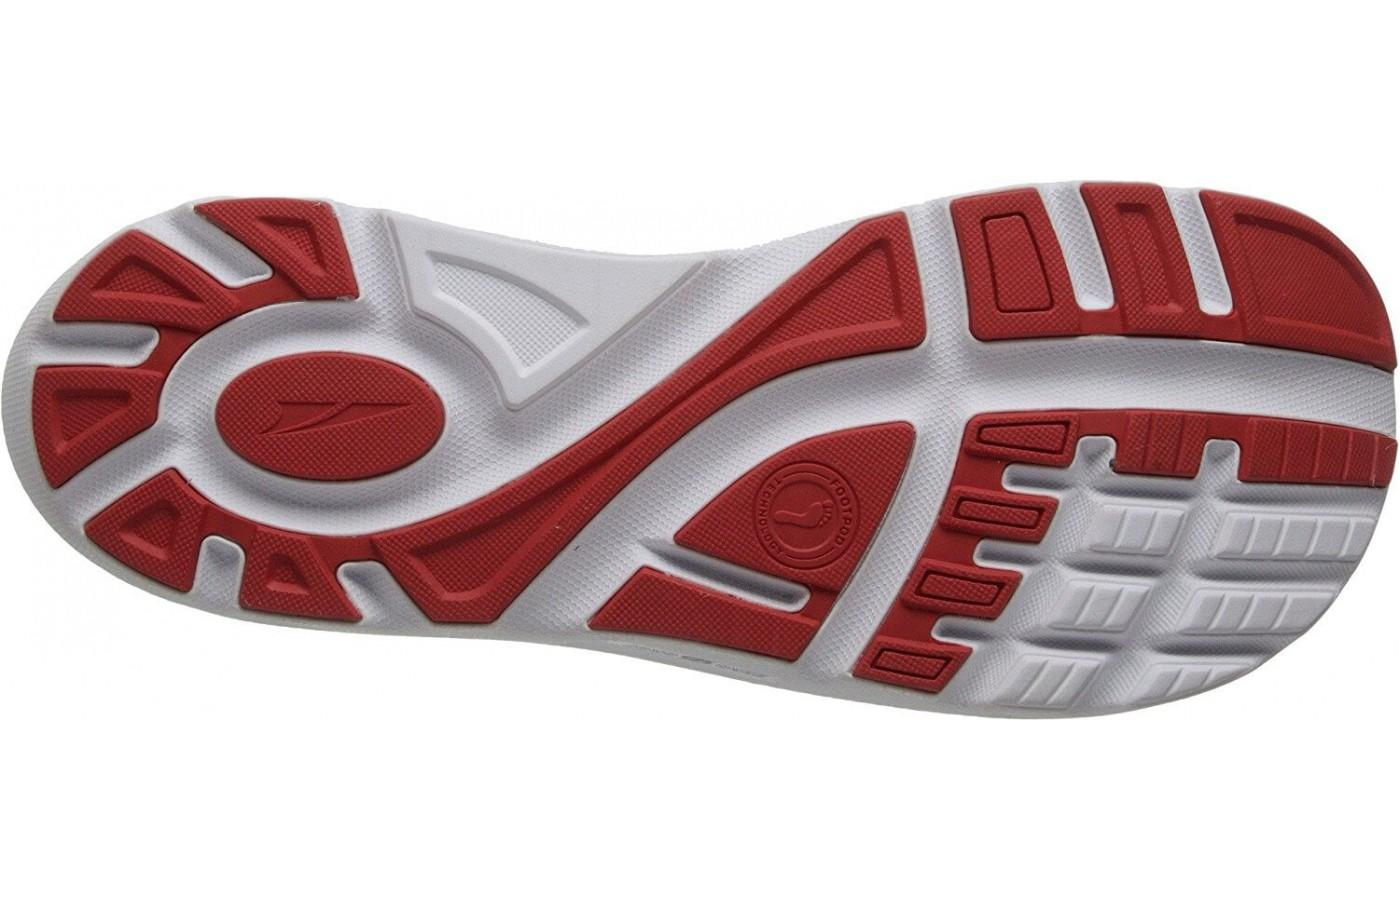 the Altra Paradigm has deep flex grooves in its outsole